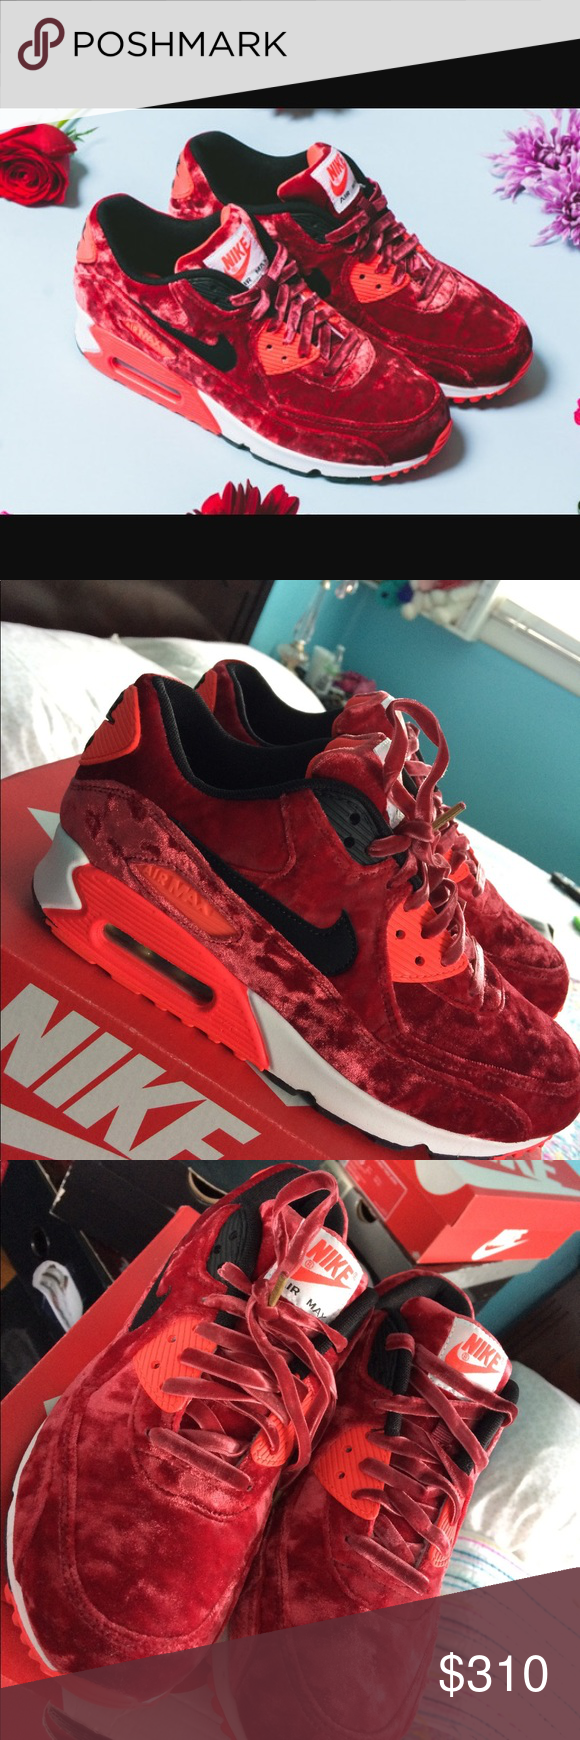 new concept bfcd9 04cbc Nike Air Max 90 Red Velvet 25th Anniversary NIKE WOMENS AIR MAX 90 - RED  VELVET GYM RED  BLACK - INFRARED - METALLIC GOLD SIZE 7.5 (BRAND NEW, ...